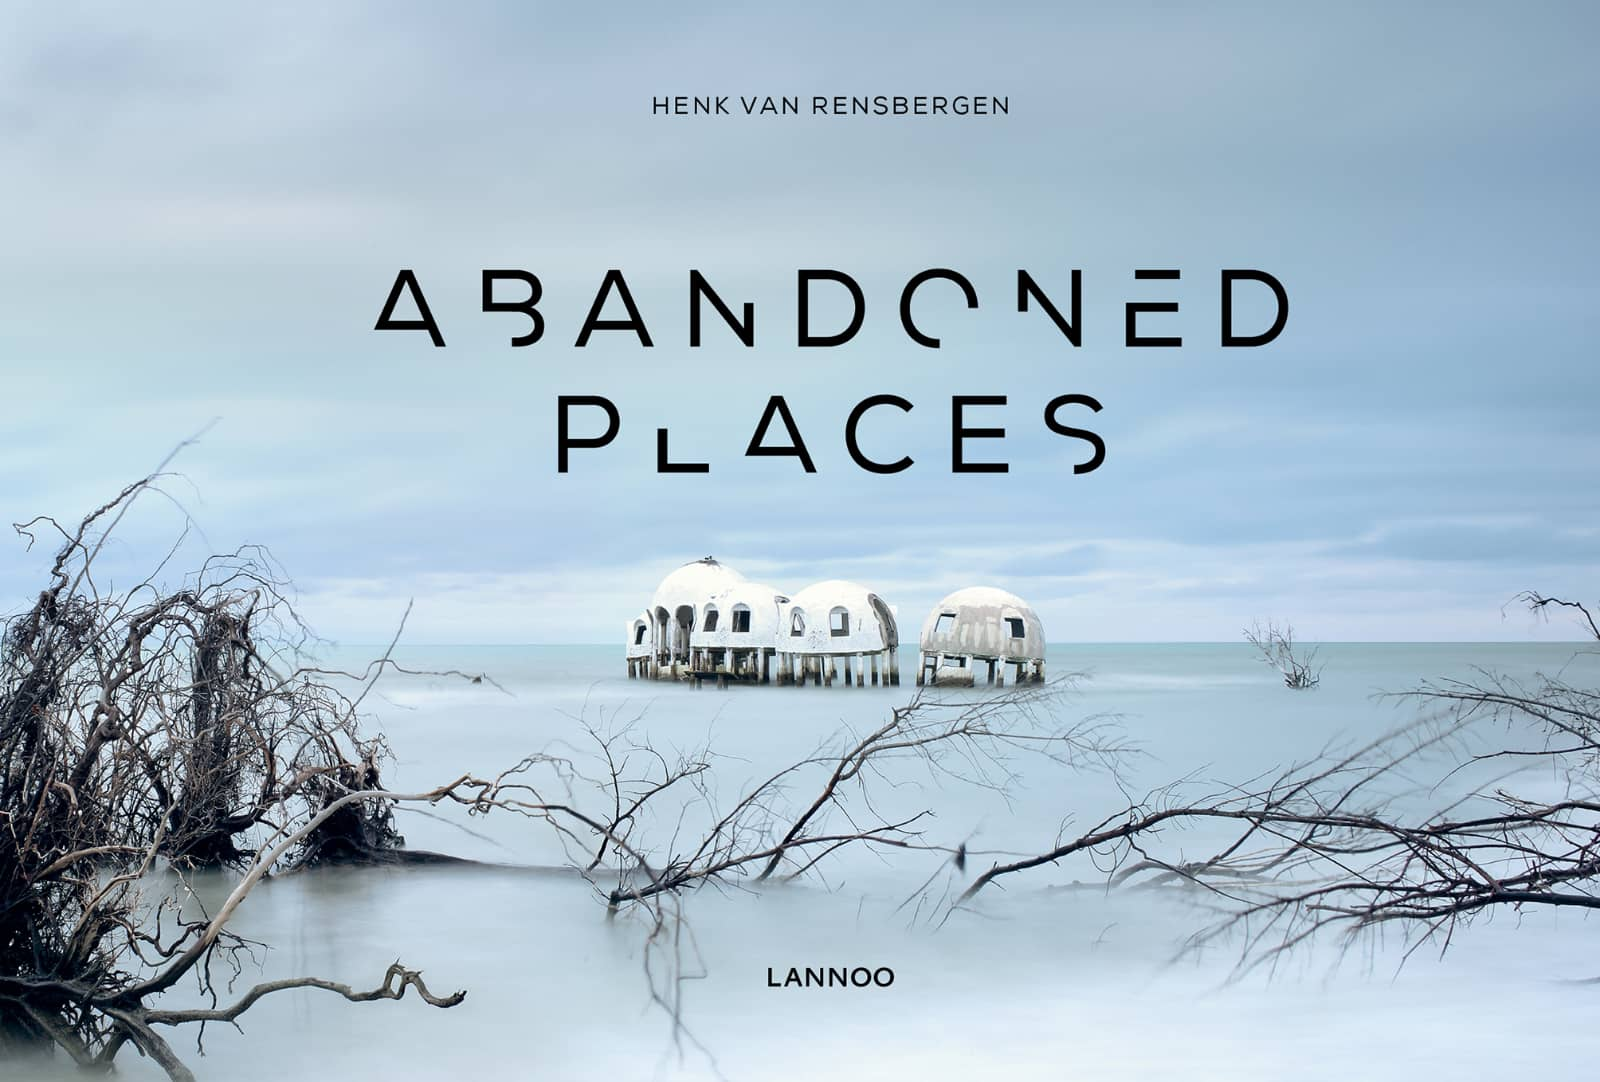 Abandoned Places - Henk van Rensbergen, isbn 9789401434775